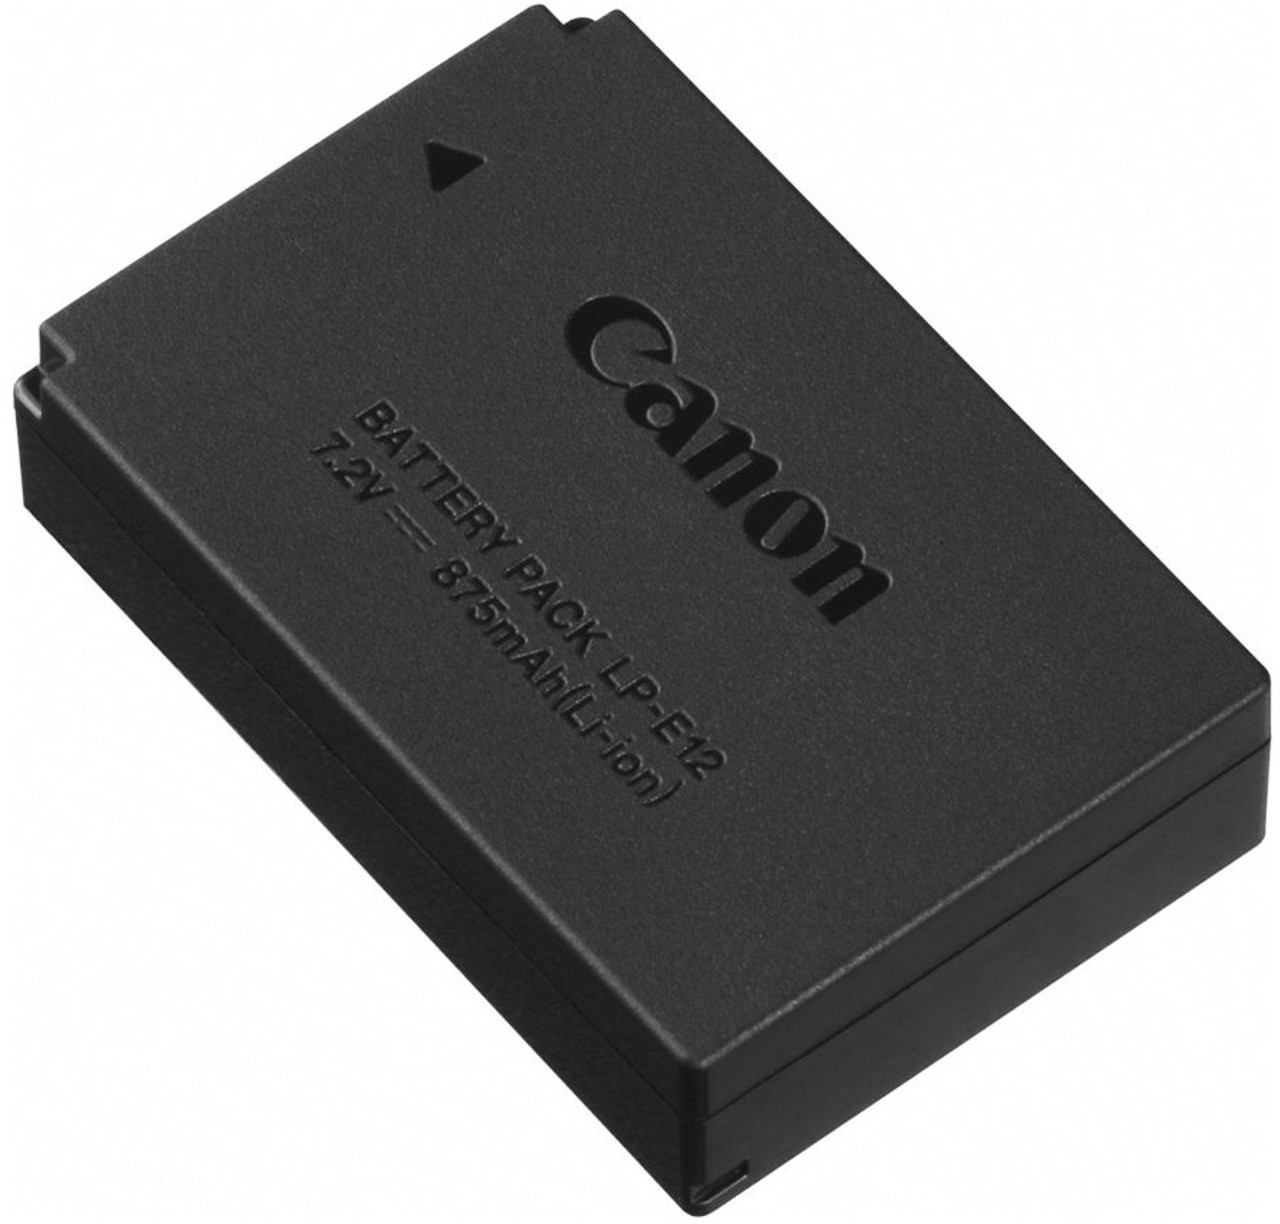 Canon LP-E12 Battery Pack for SL1 and EOS-M Mirrorless Digital Camera